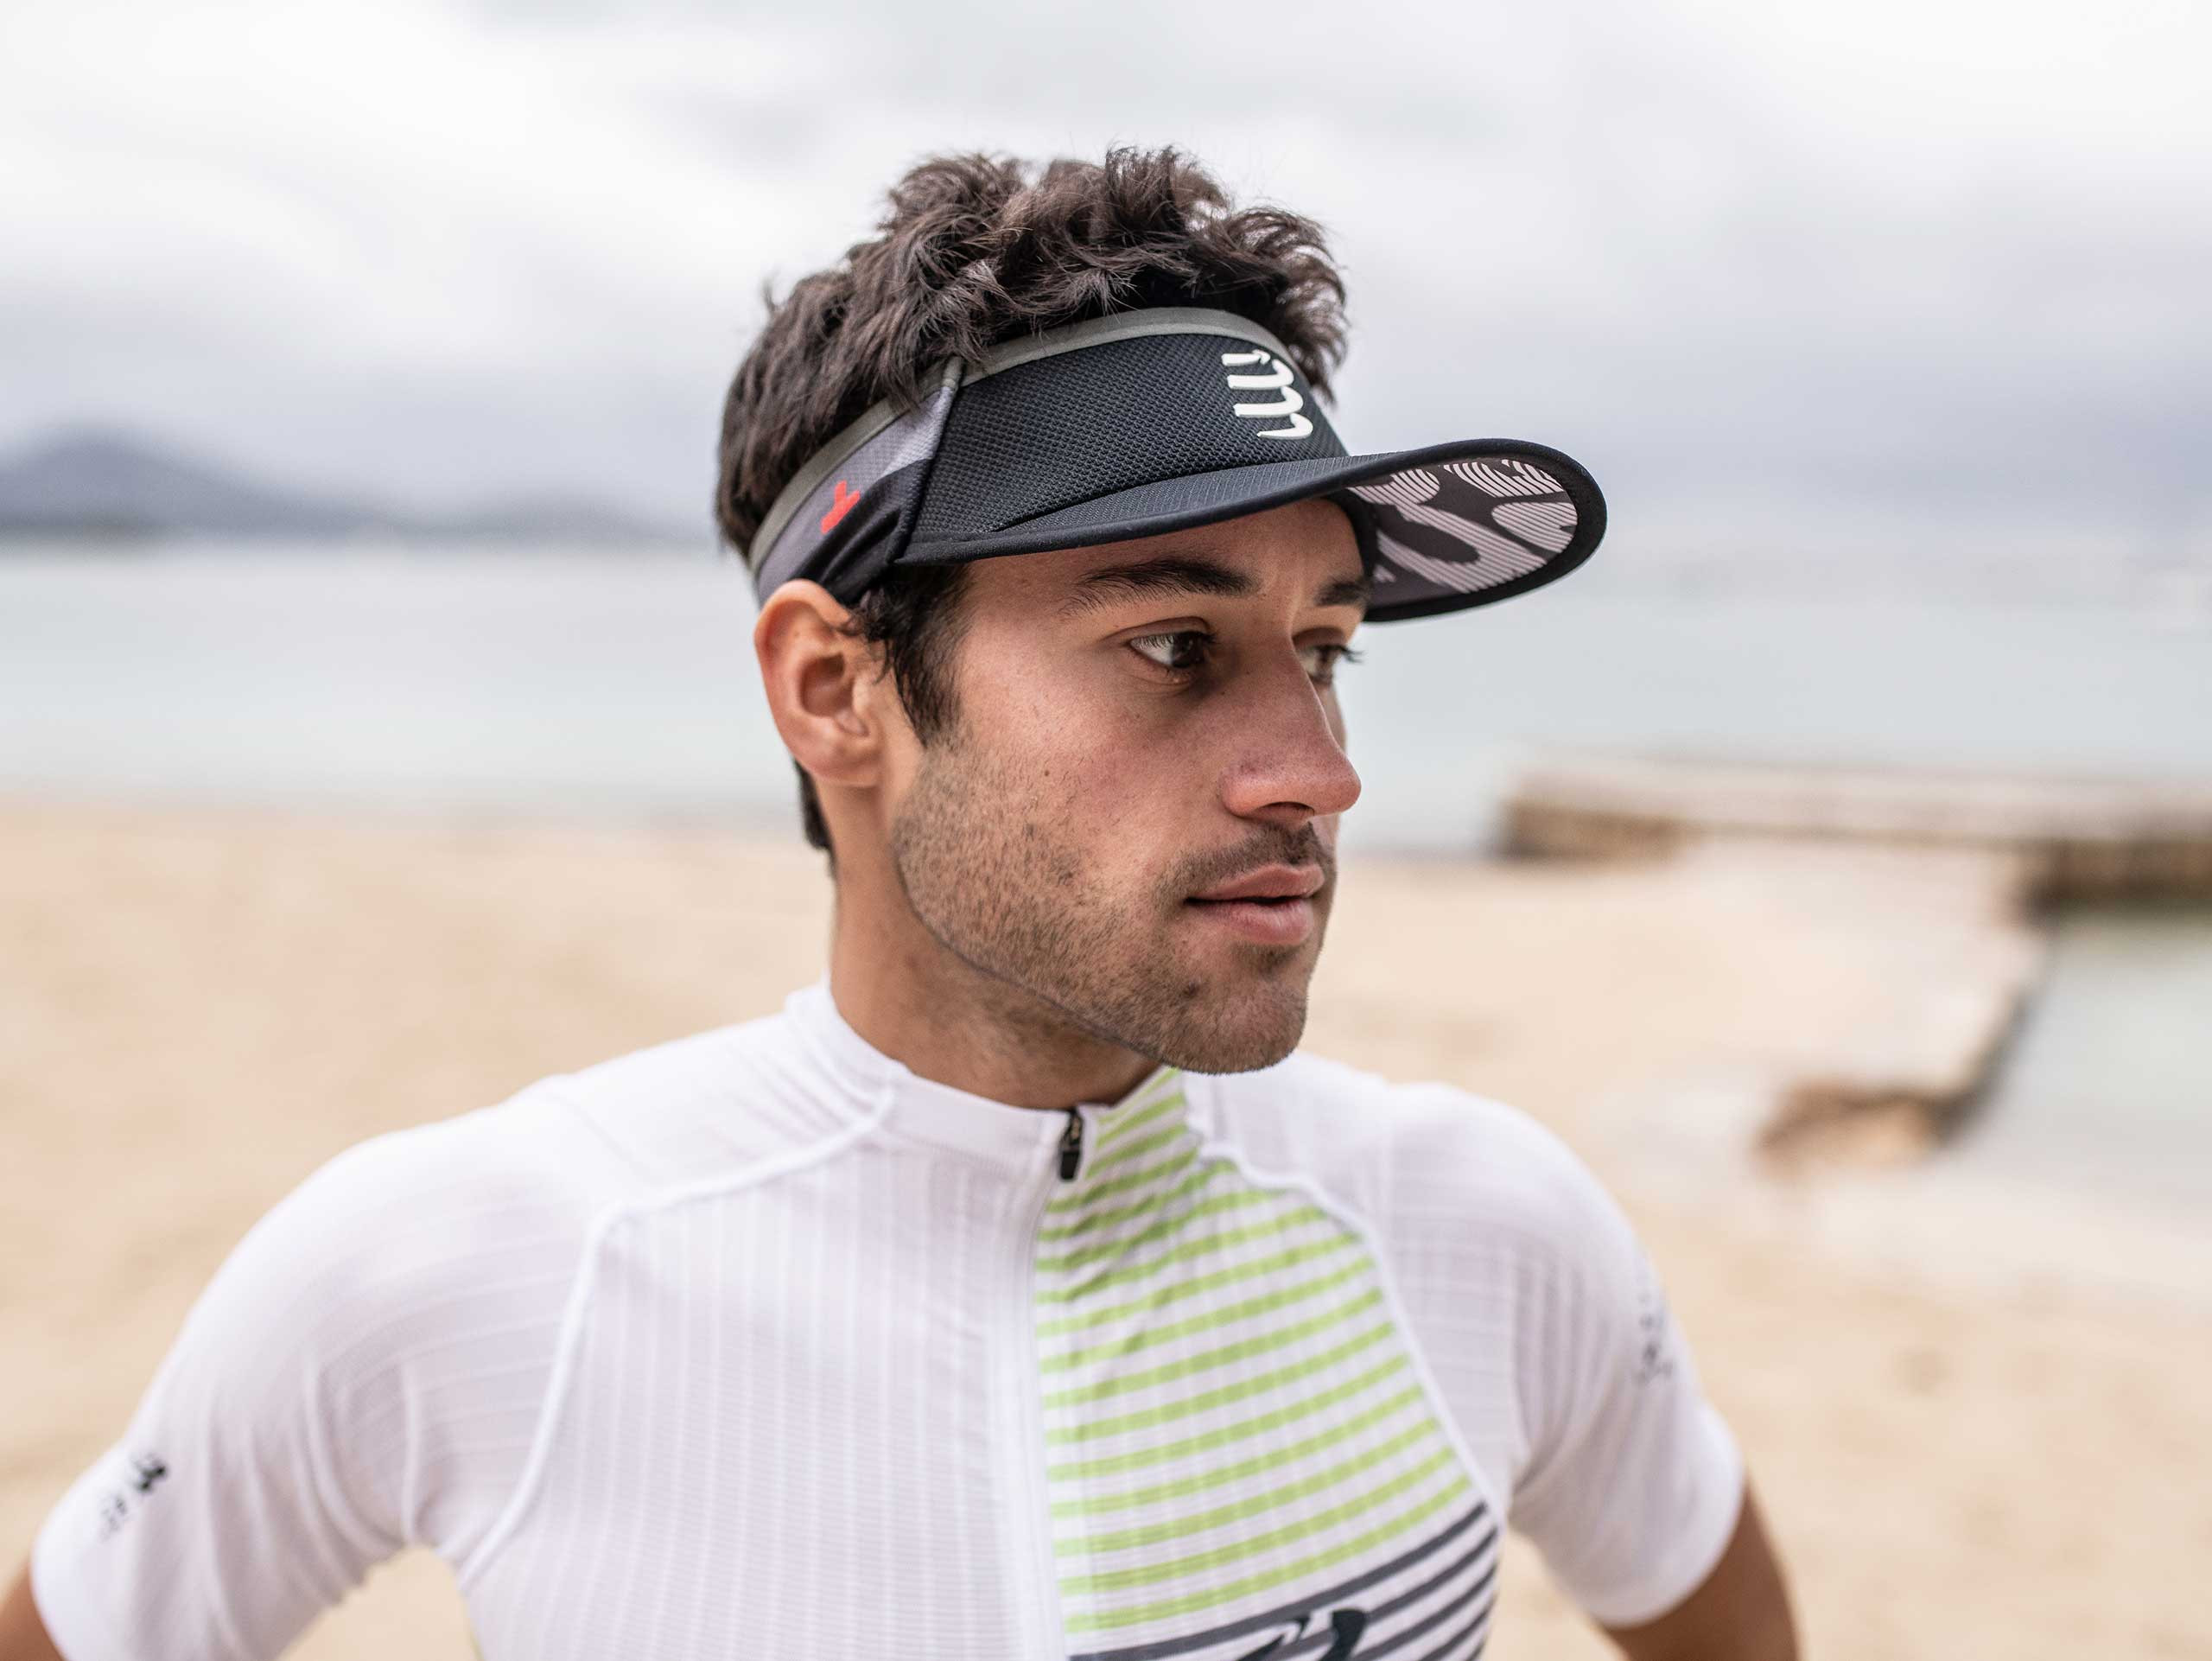 Visor Ultralight schwarz